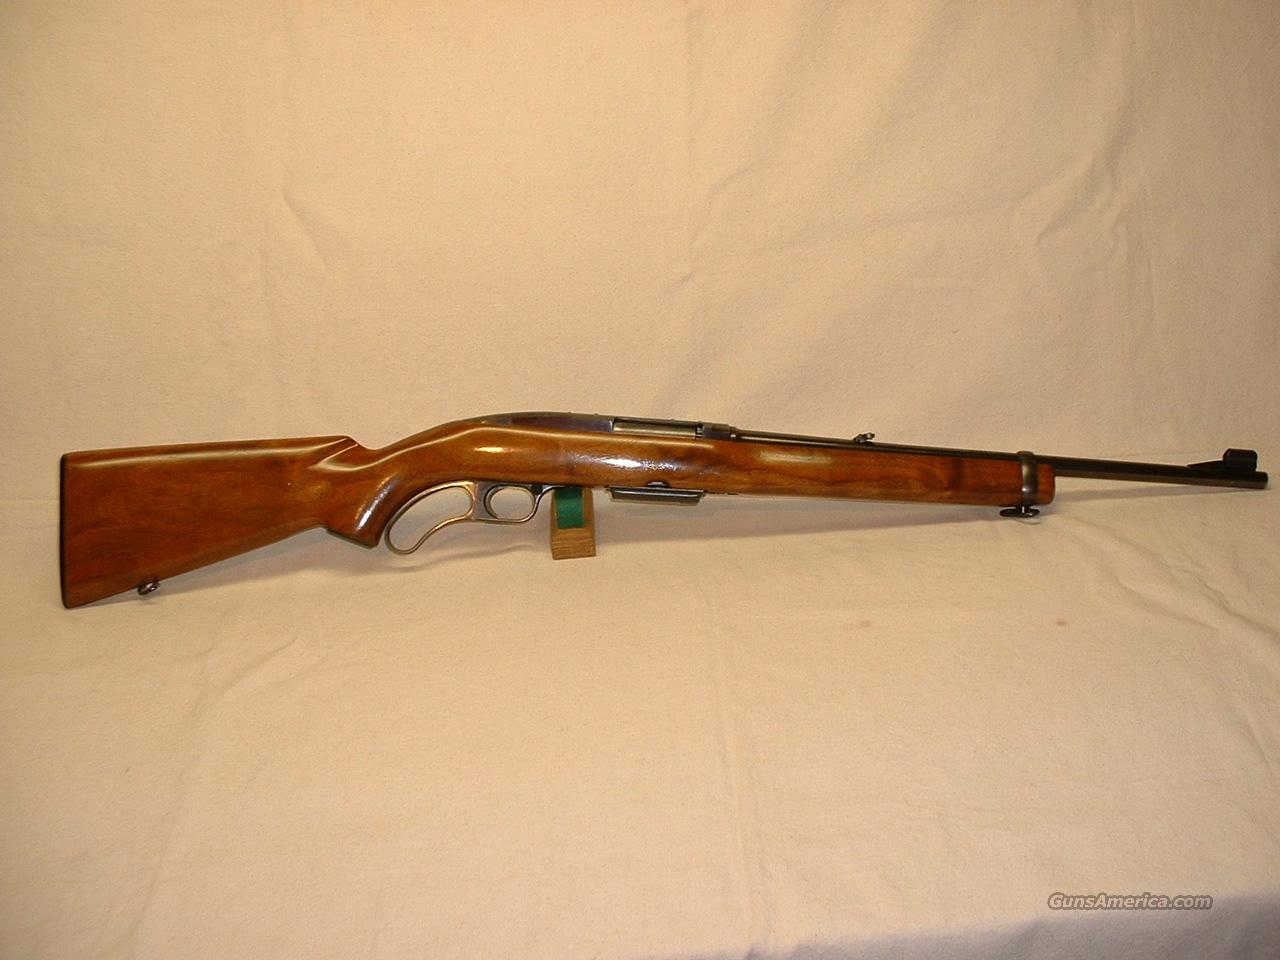 WINCHESTER MODEL 88 CARBINE - CAL. .243  Guns > Rifles > Winchester Rifles - Modern Lever > Other Lever > Post-64